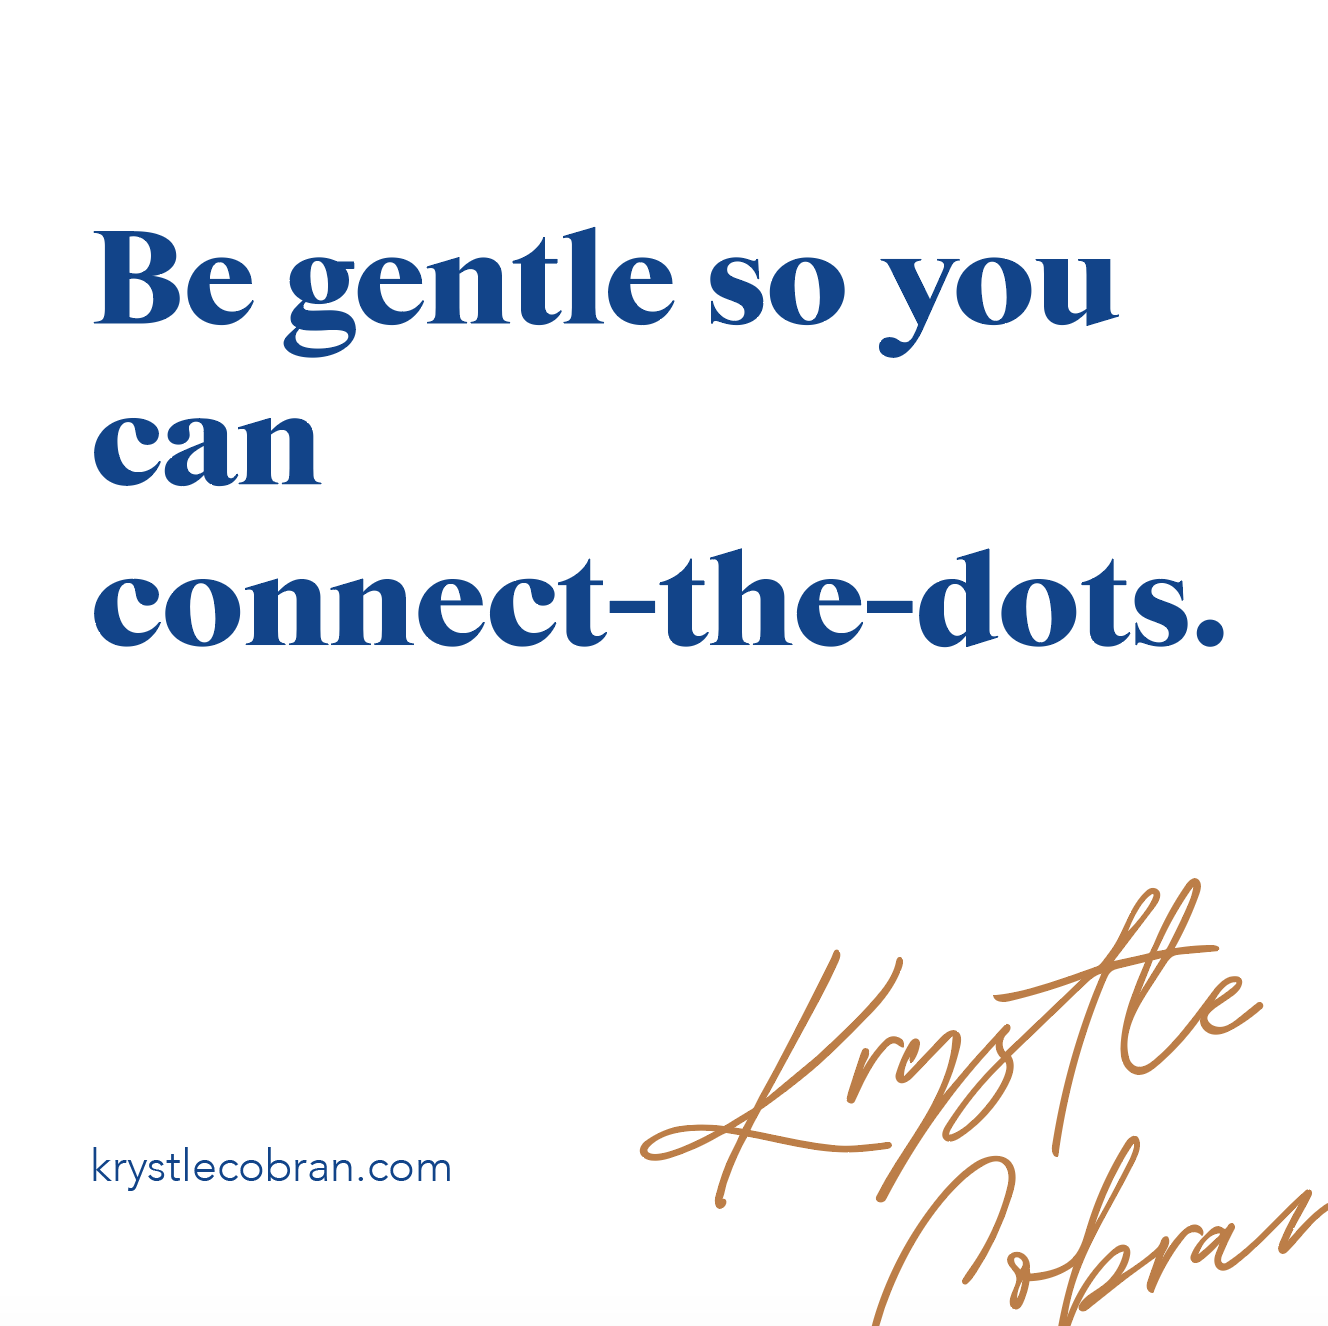 Be gentle so you can connect-the-dots - krystlecobran.com - blog post